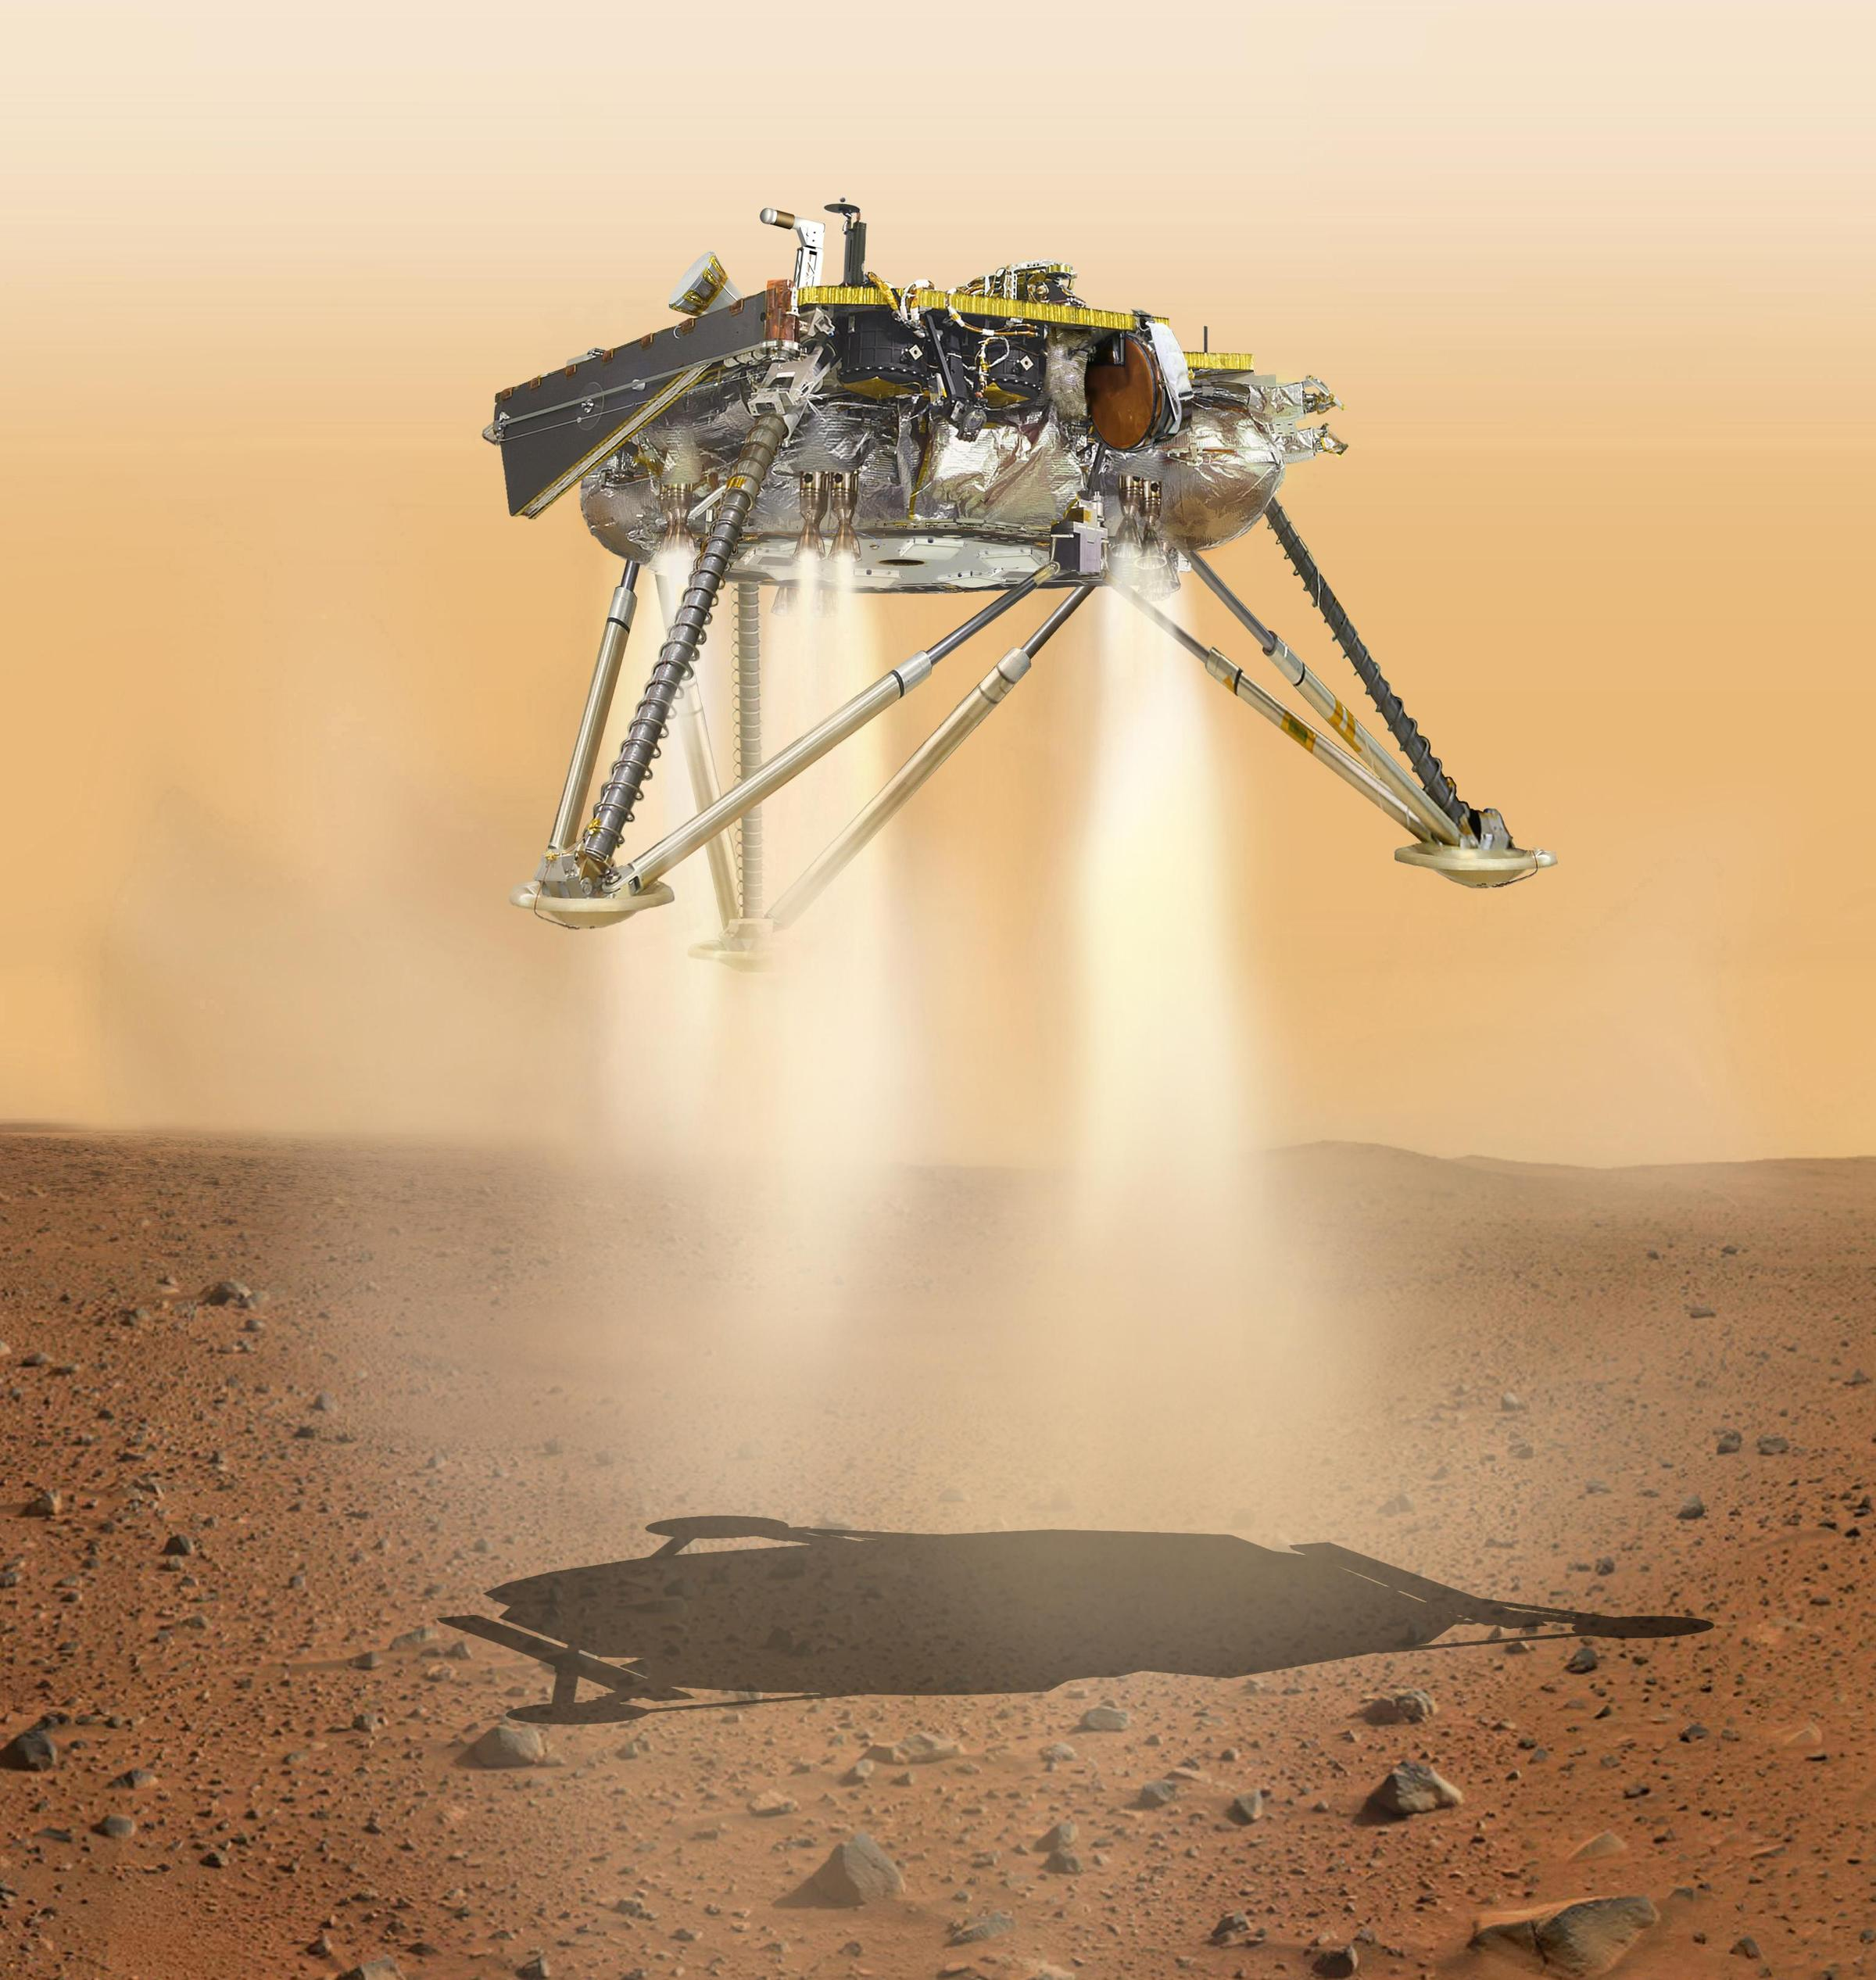 NASA picks Jezero Crater for Mars 2020 rover landing site